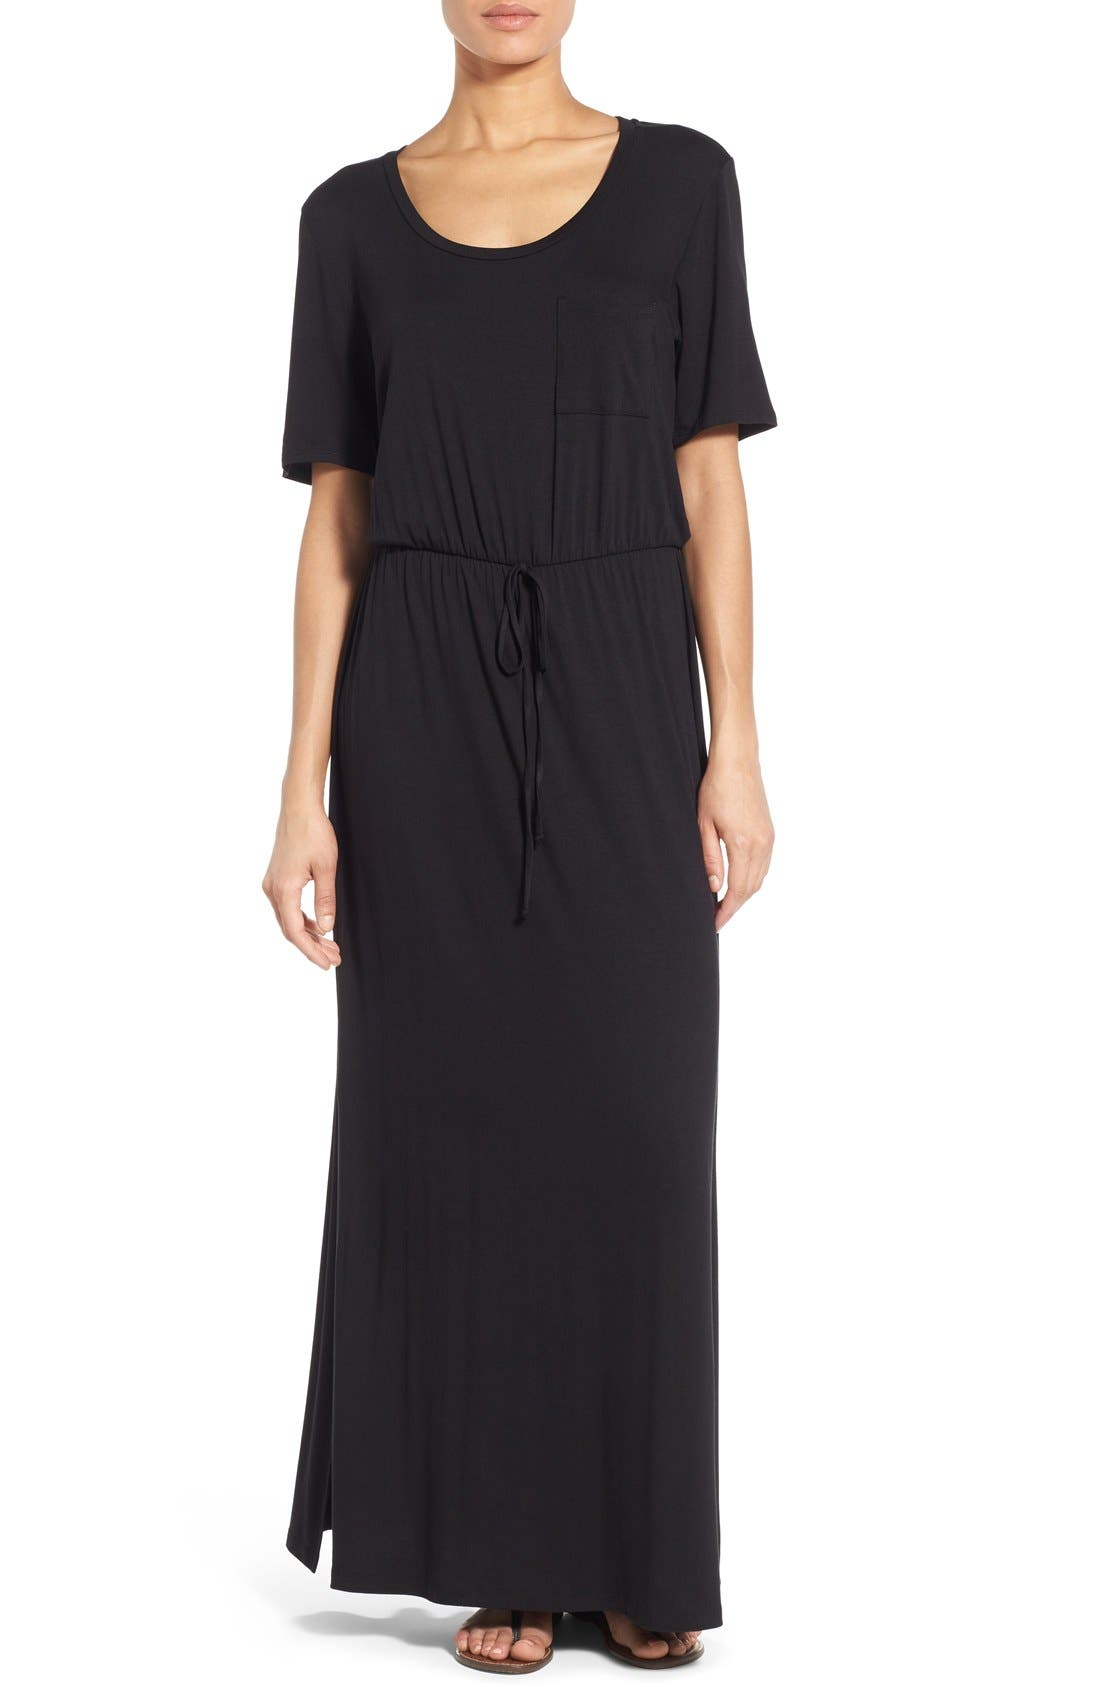 BOBEAU, Drawstring Waist Jersey Maxi Dress, Main thumbnail 1, color, 005